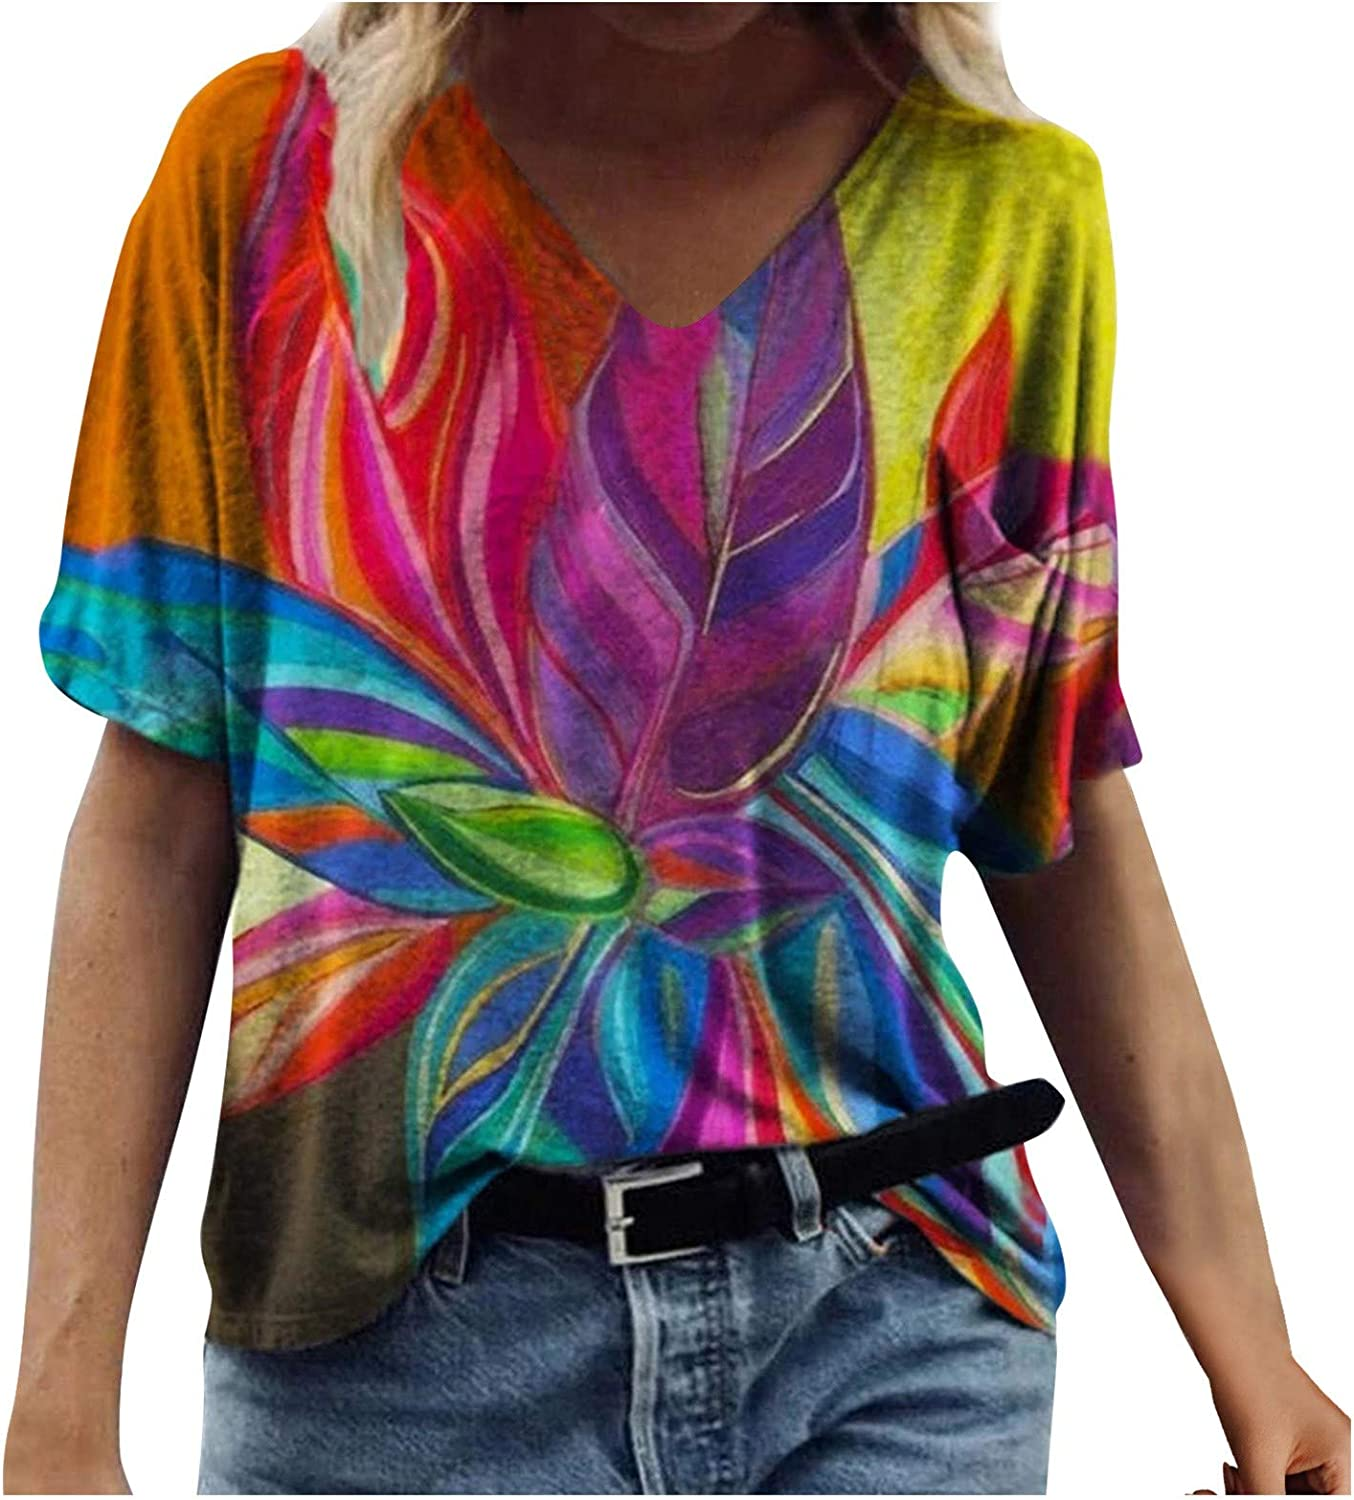 Jaqqra Summer Tops for Women, Womens Fashion Floral Printed V Neck T-Shirts Casual Short Sleeve Blouse Tops Tunic